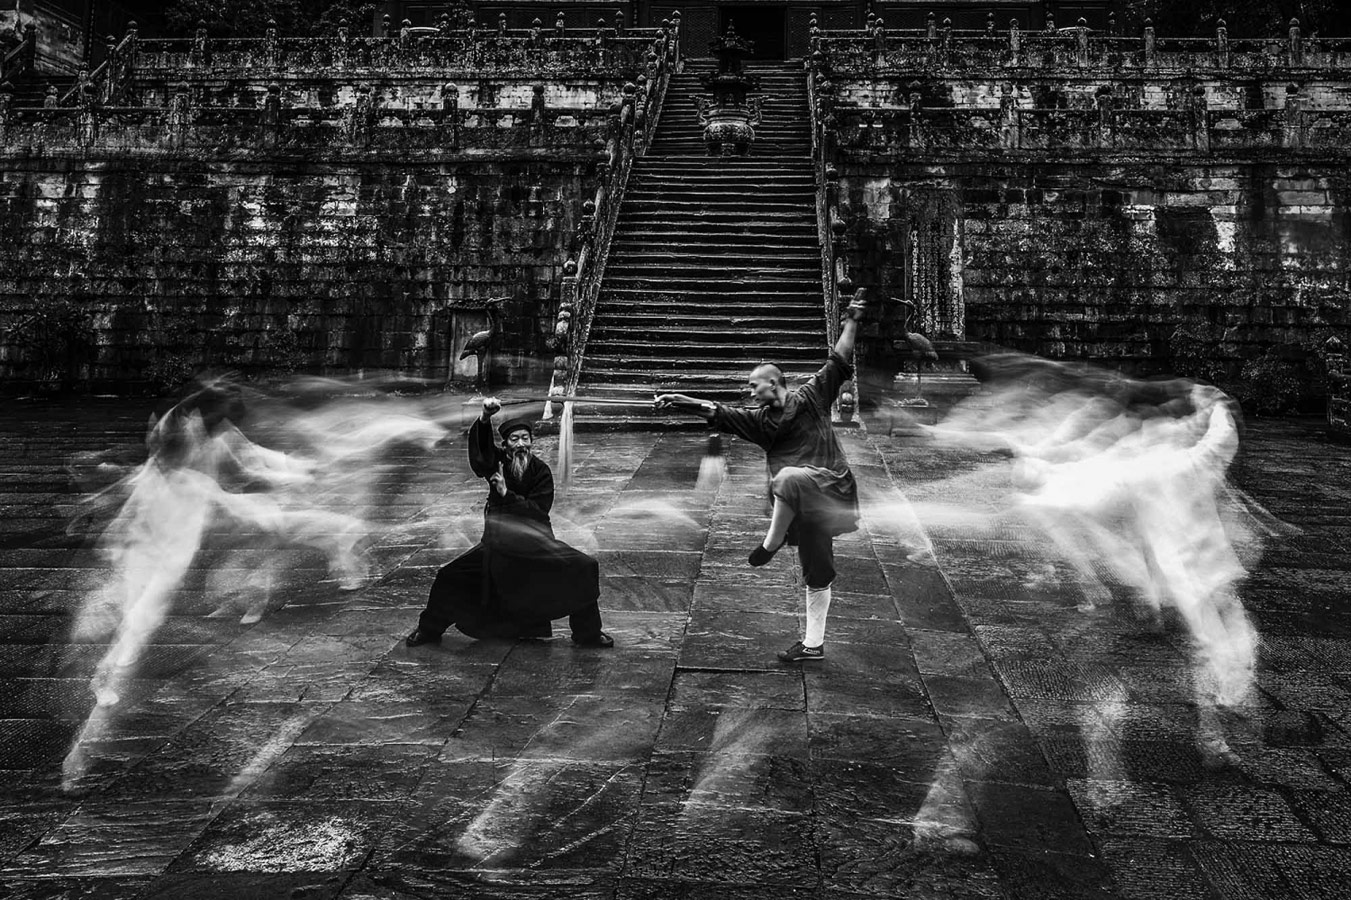 Wudang Kung Fu 4, © Genhong YANG, 2nd Place, Non-Professional - Photojournalism/Documentary, Zebra Awards - TZIPAC Black and White Photographer of the Year